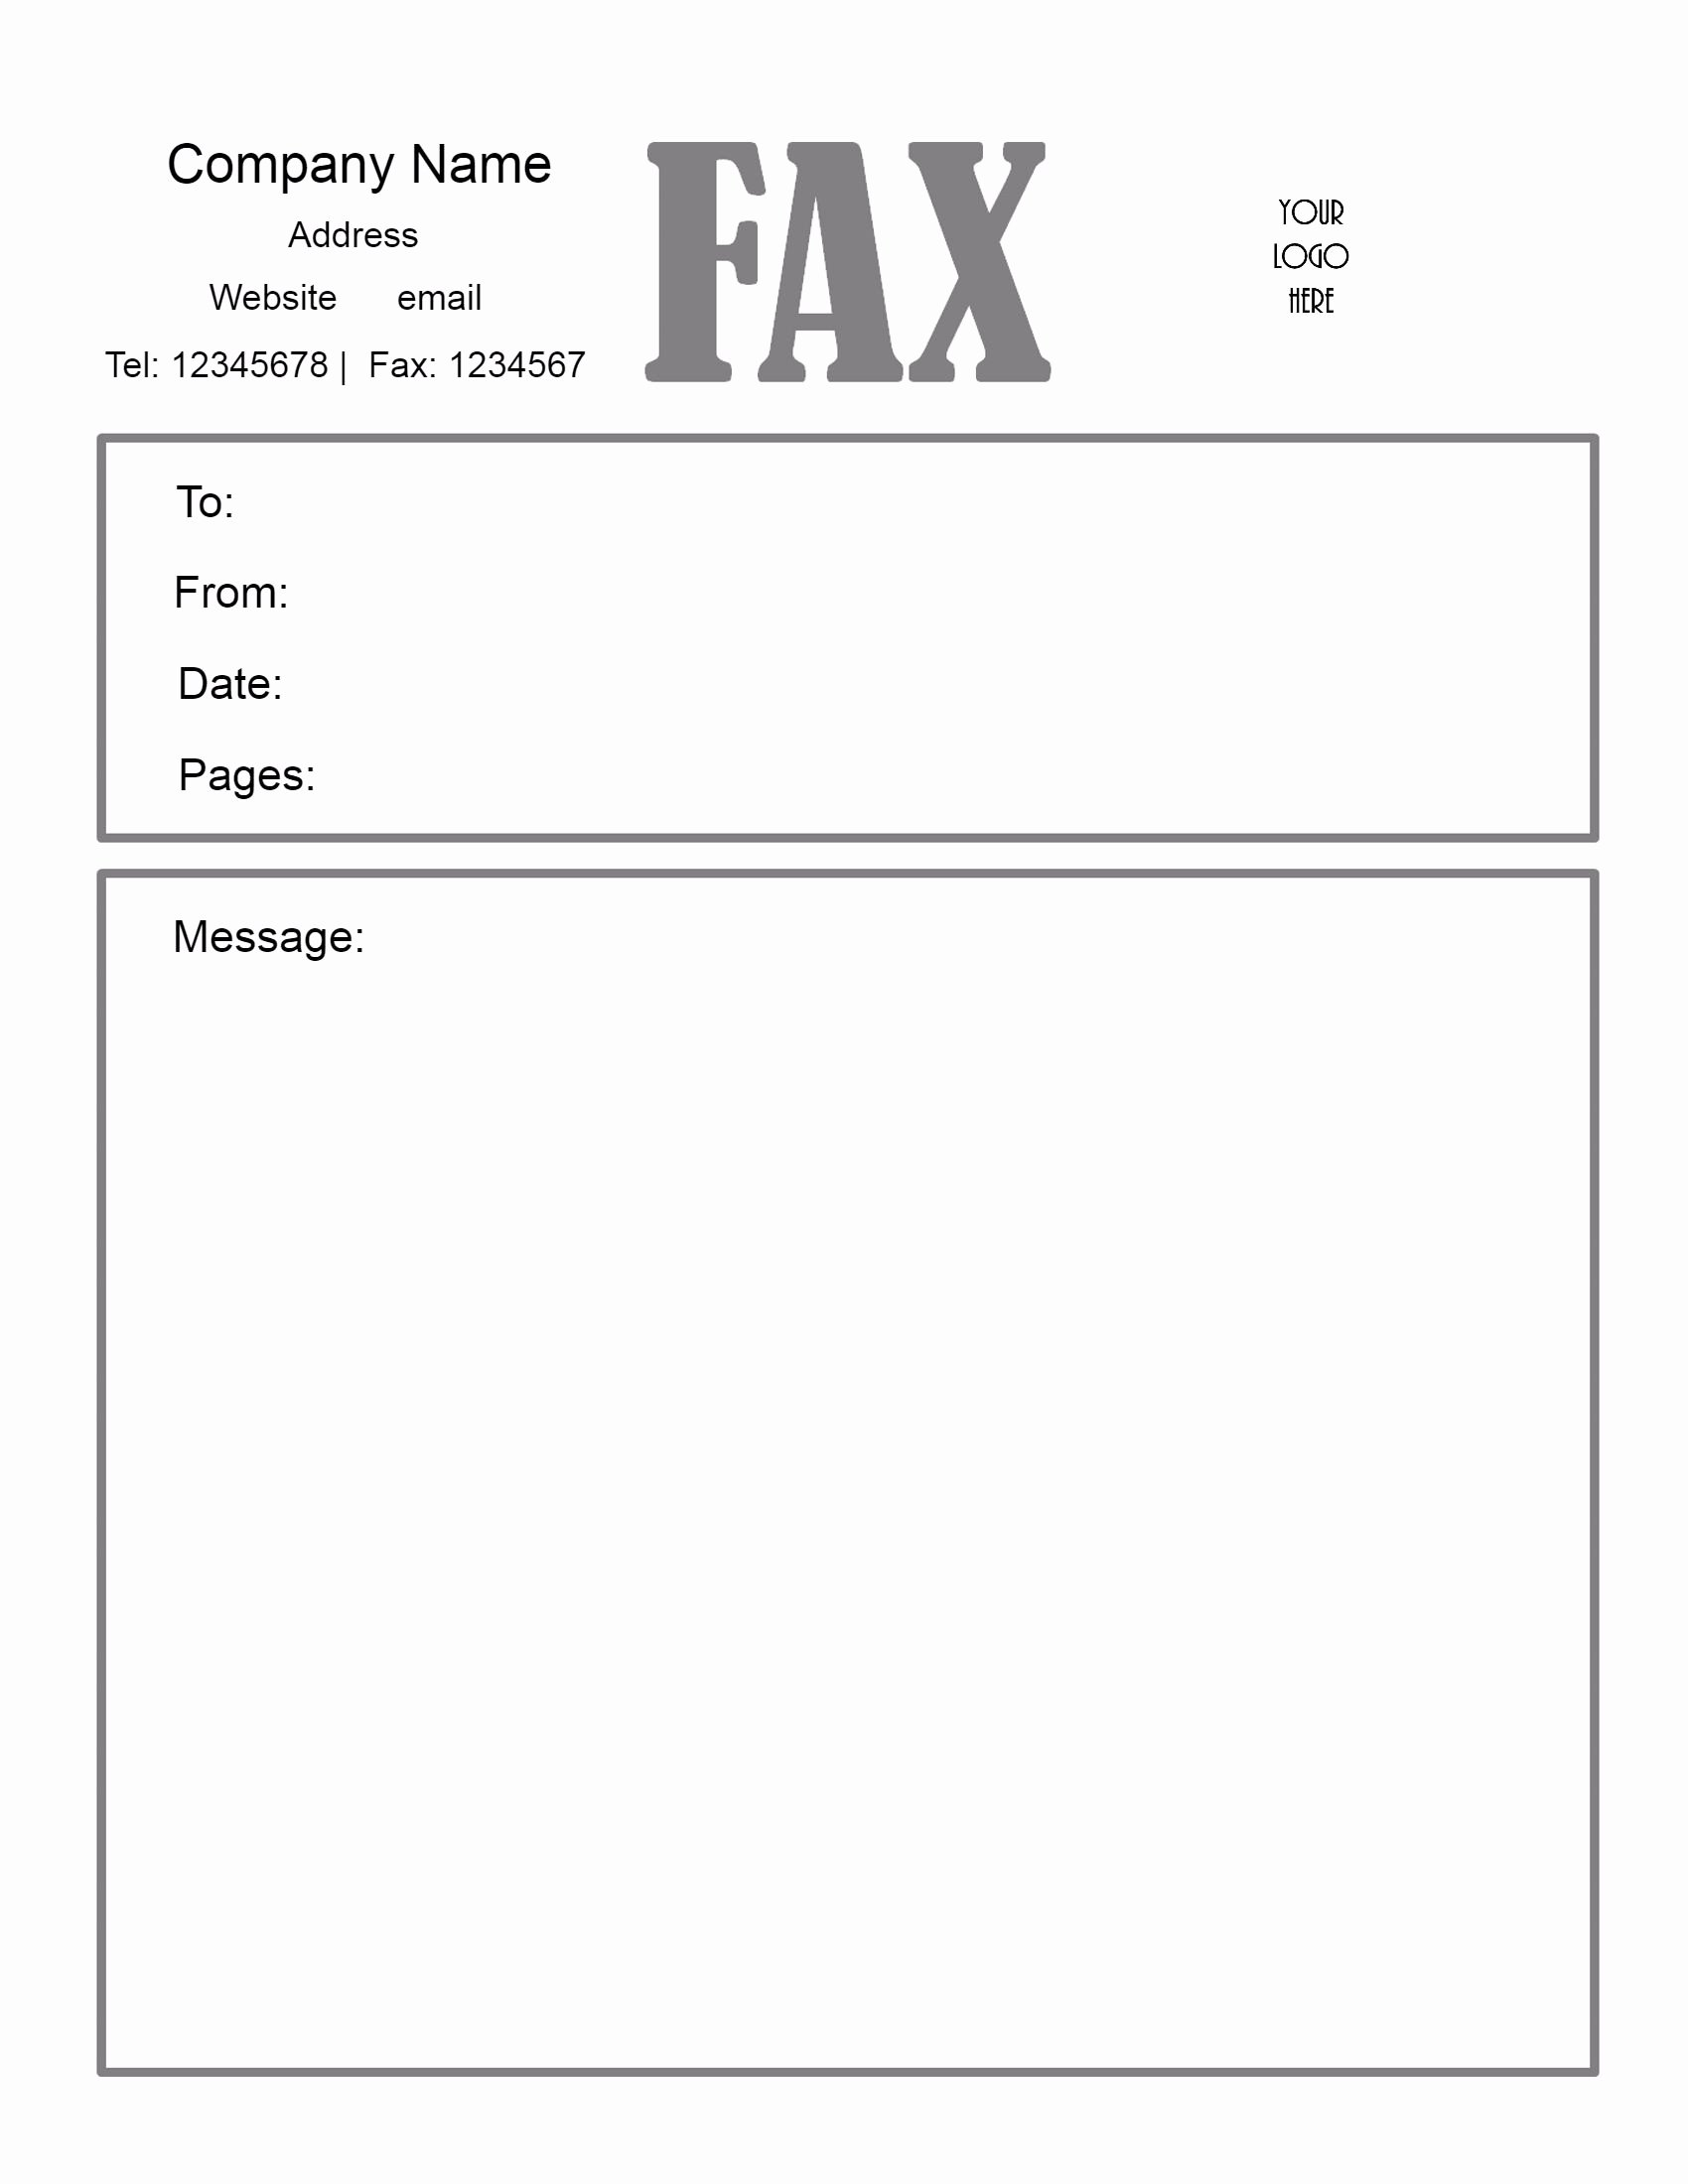 Print Fax Cover Sheet Awesome Free Fax Cover Letter Template